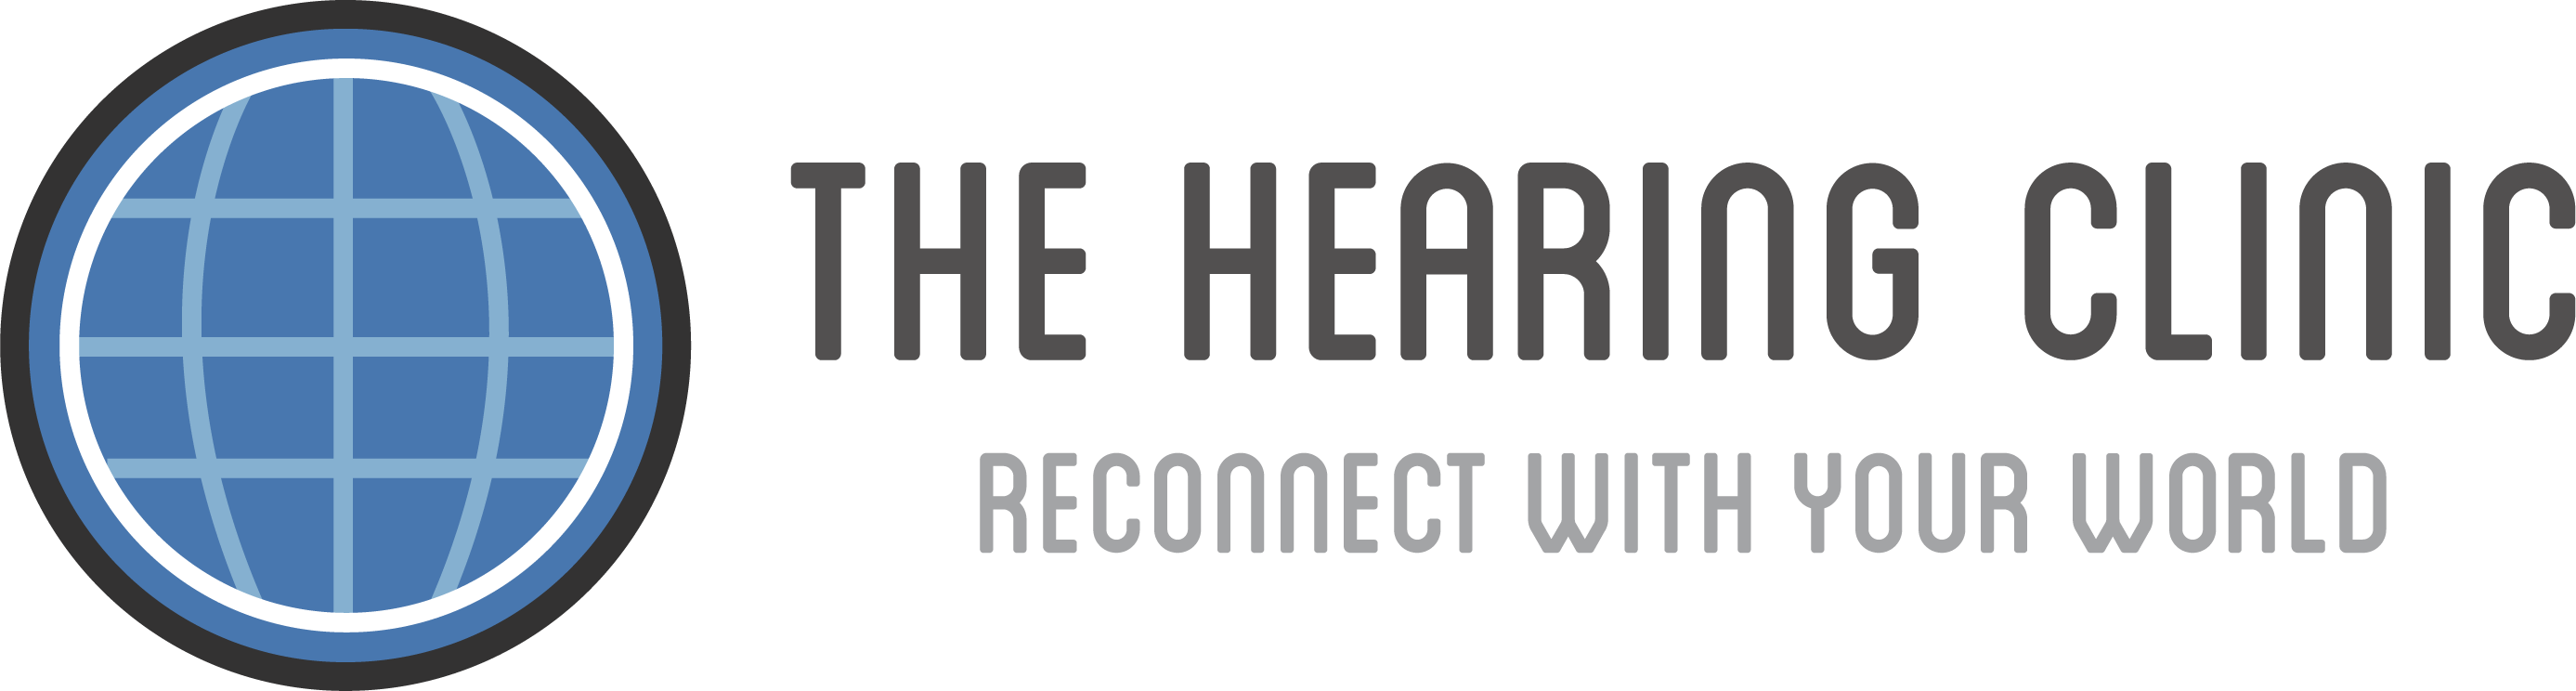 The Hearing Clinic logo